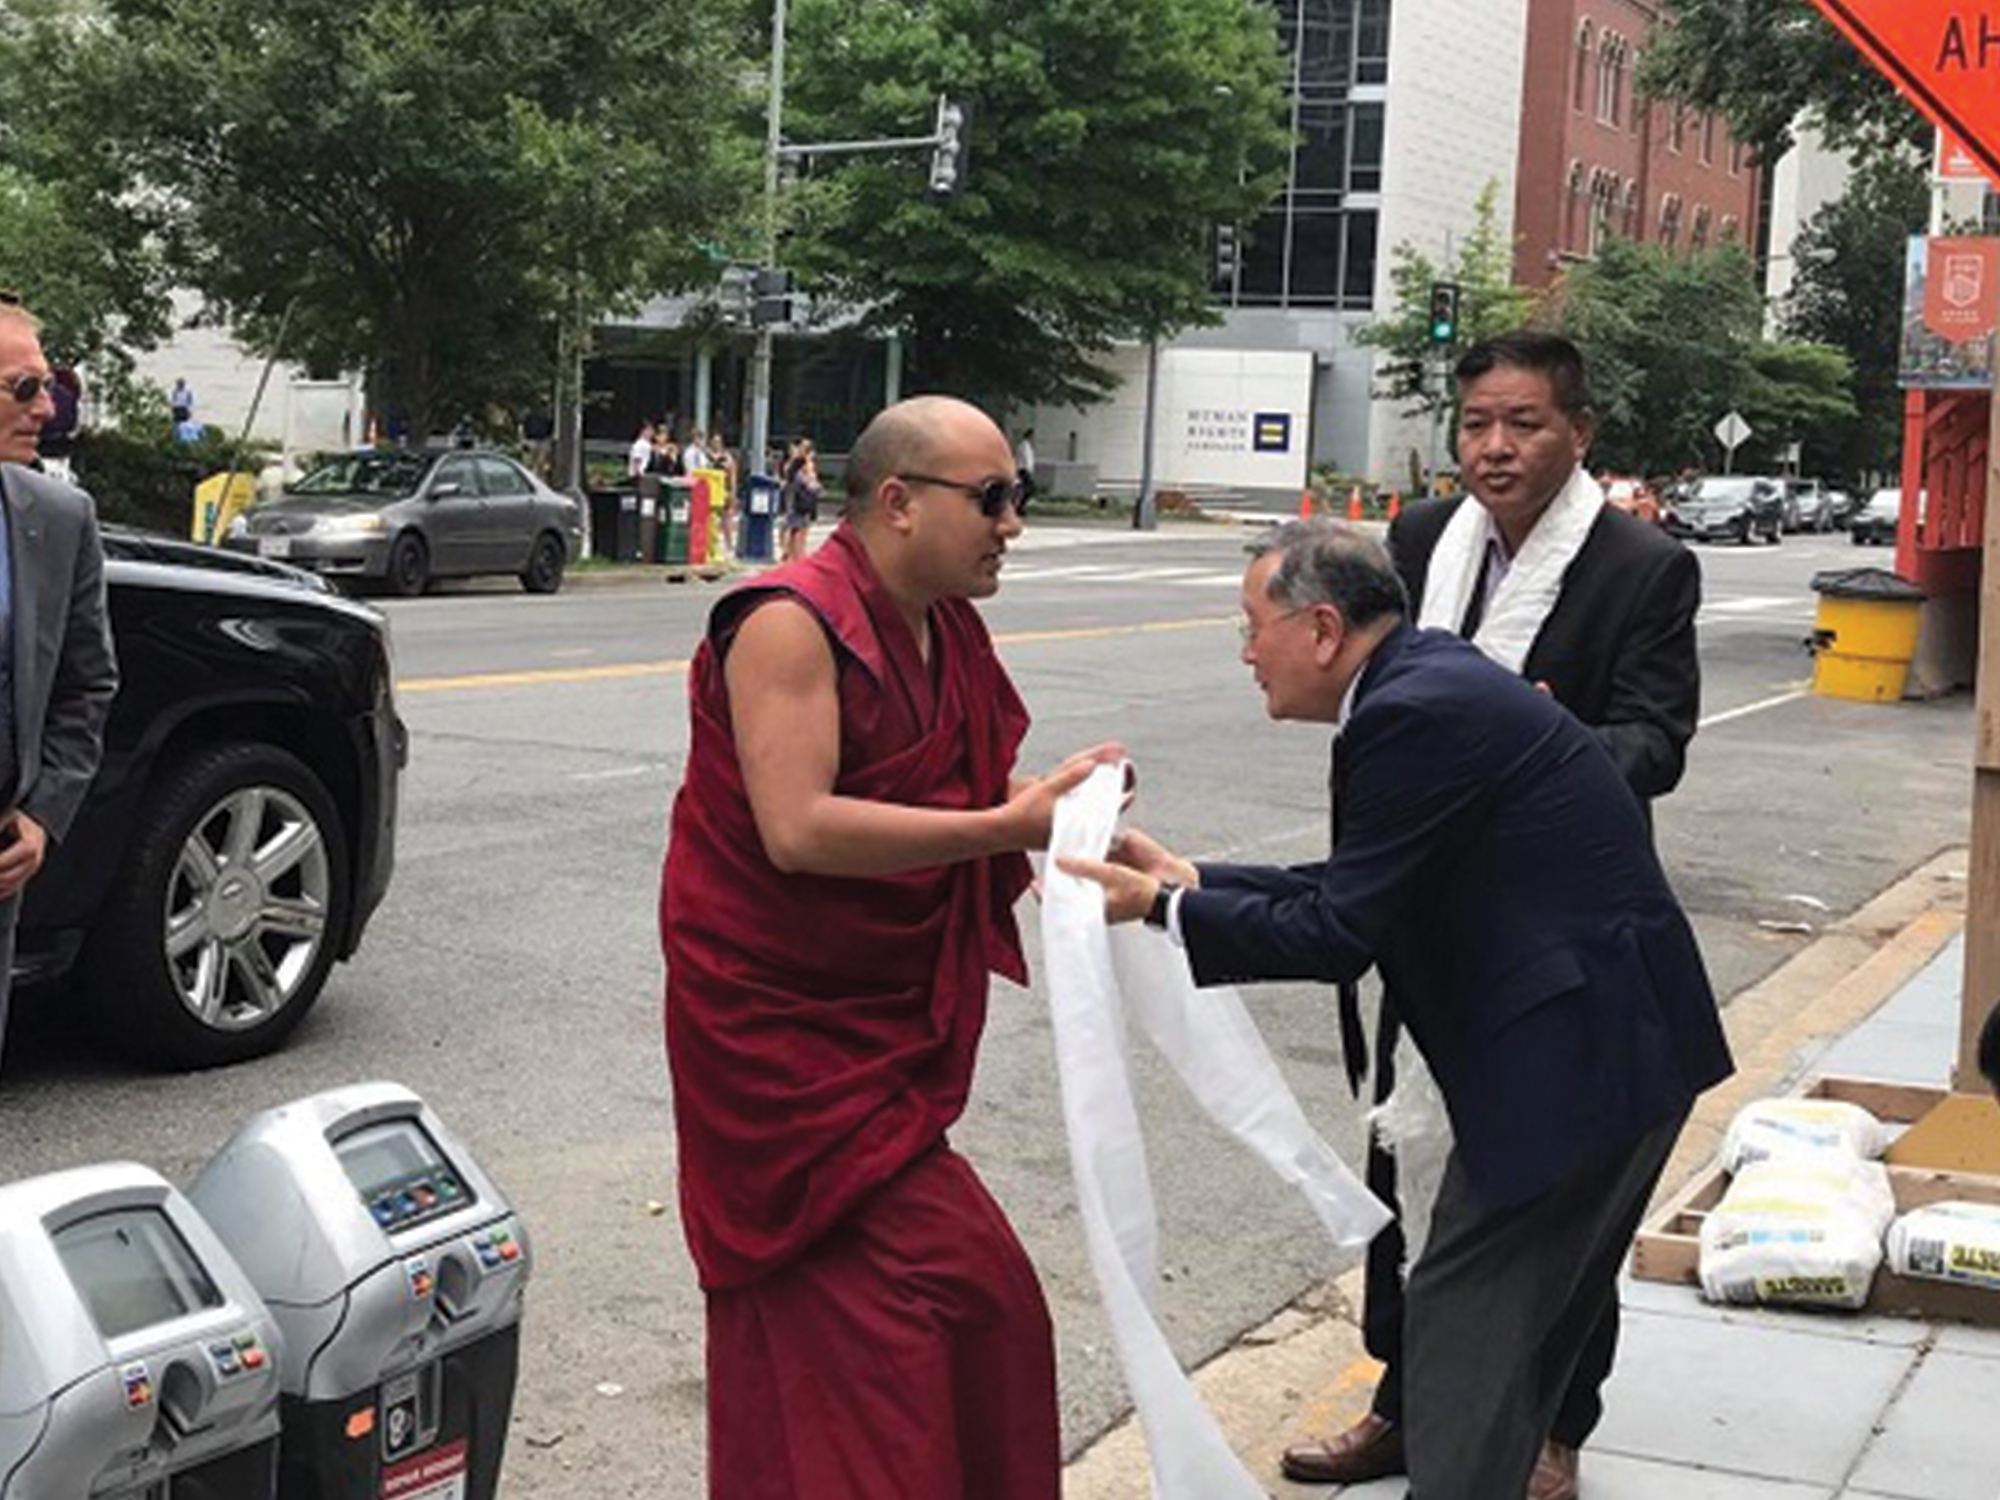 Gyalwang Karmapa Rinpoche Visits Office of Tibet in Washington DC